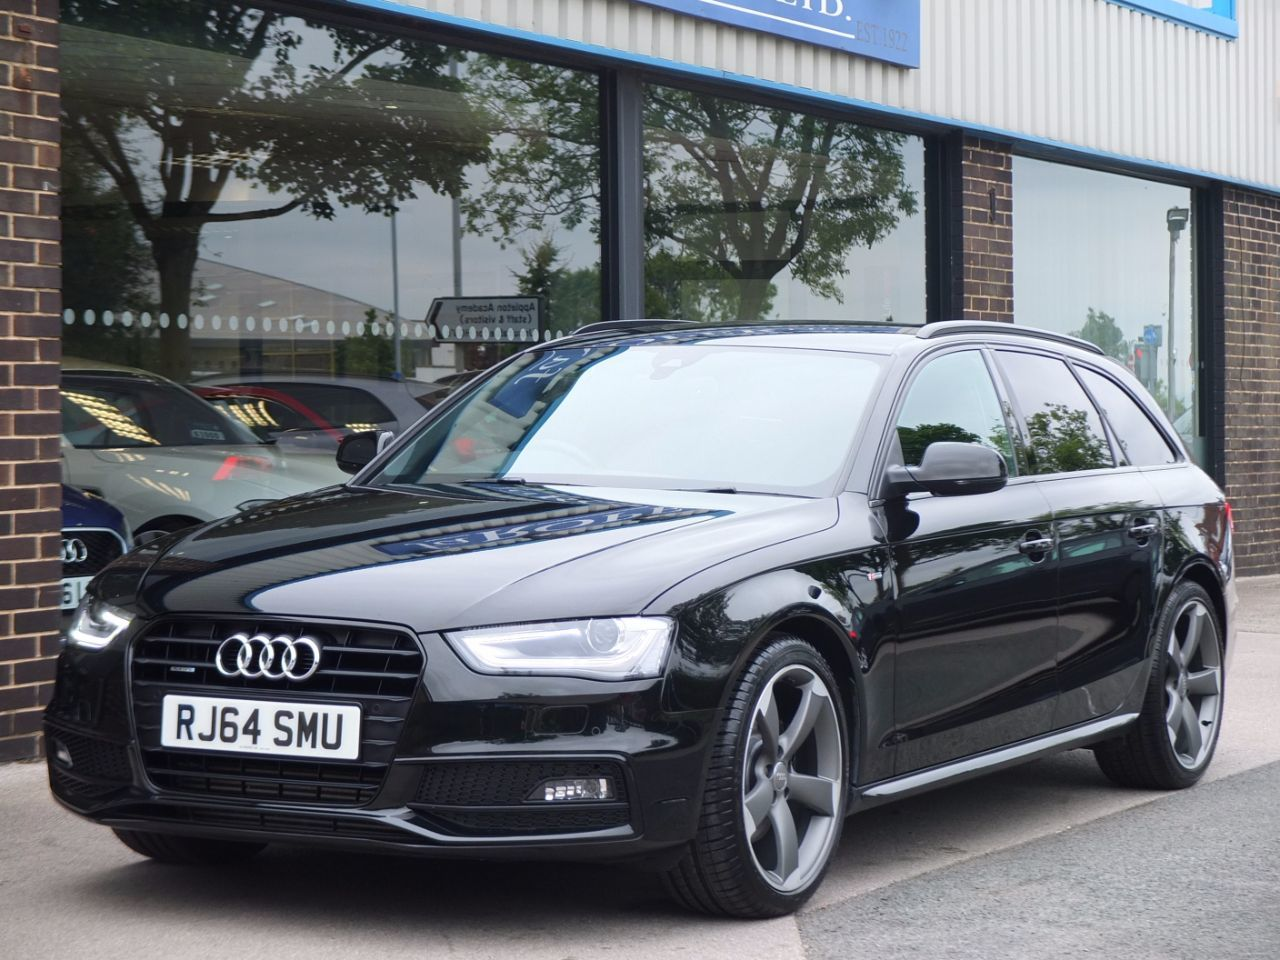 Audi A4 Avant 2.0 TDI 177ps quattro Black Edition S tronic Estate Diesel Mythos Black MetallicAudi A4 Avant 2.0 TDI 177ps quattro Black Edition S tronic Estate Diesel Mythos Black Metallic at fa Roper Ltd Bradford